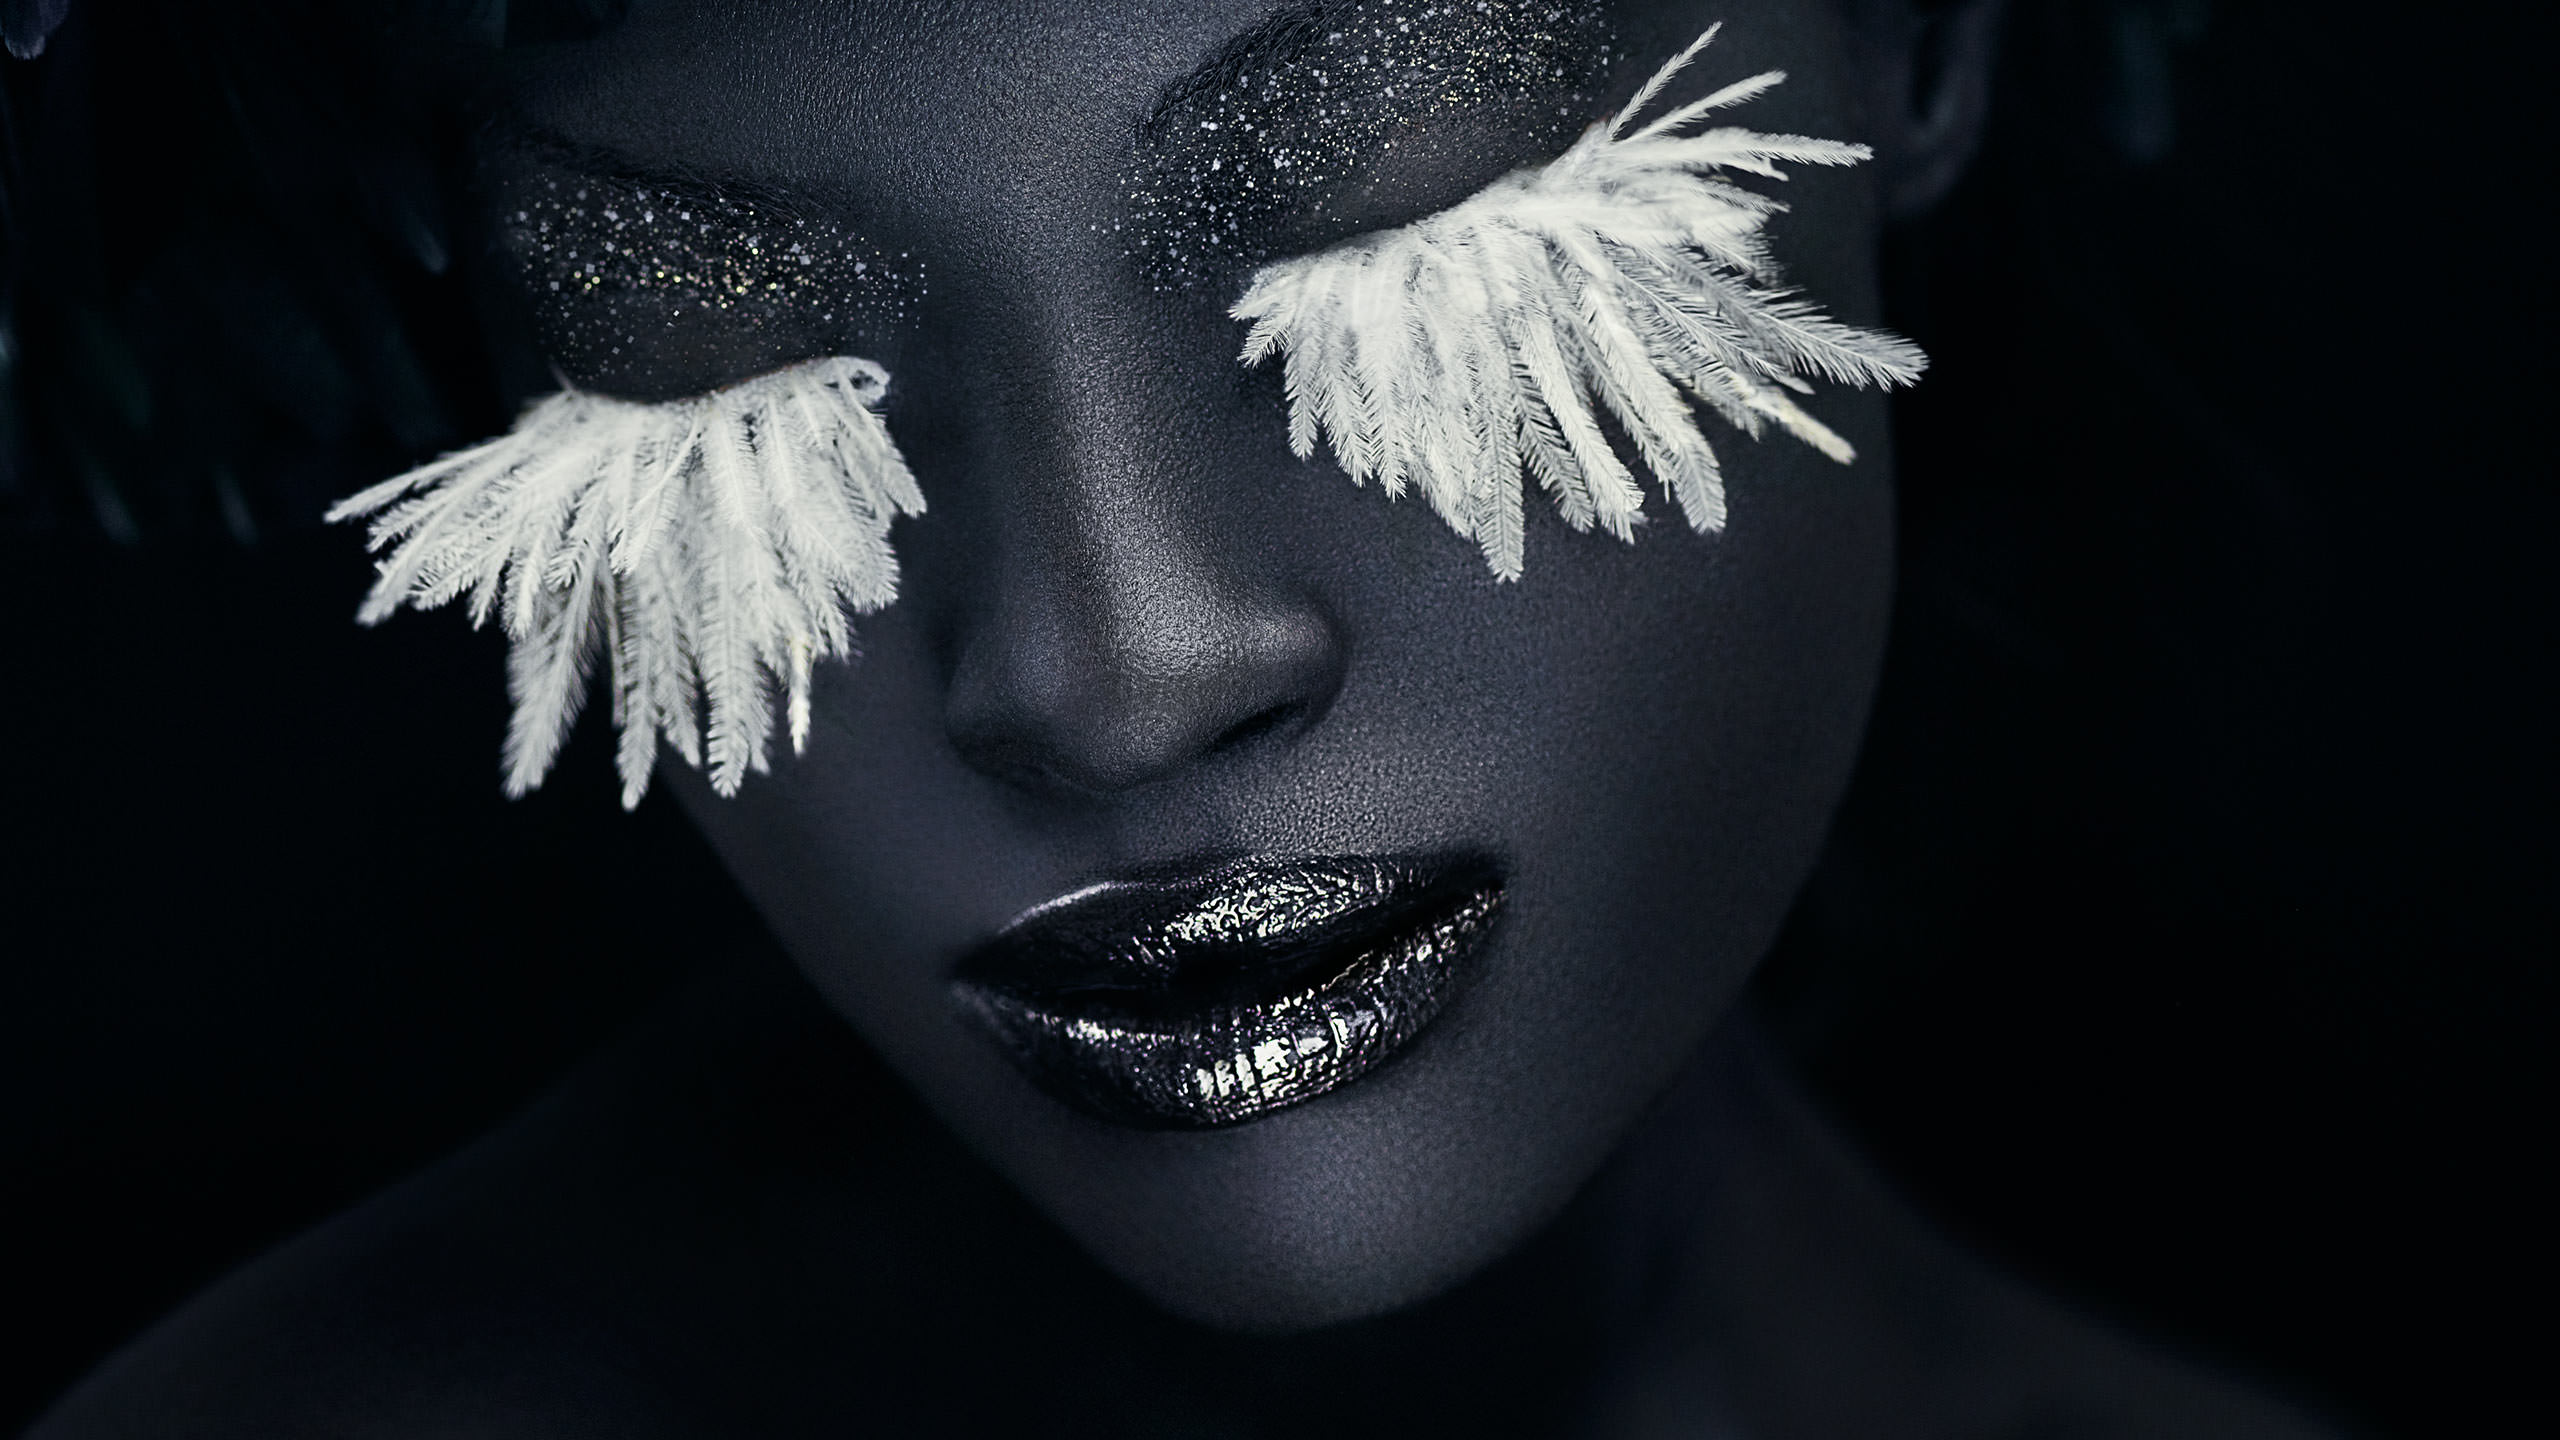 Adobe Lightroom Portrait Photoshoot closeup with large white eyelashes